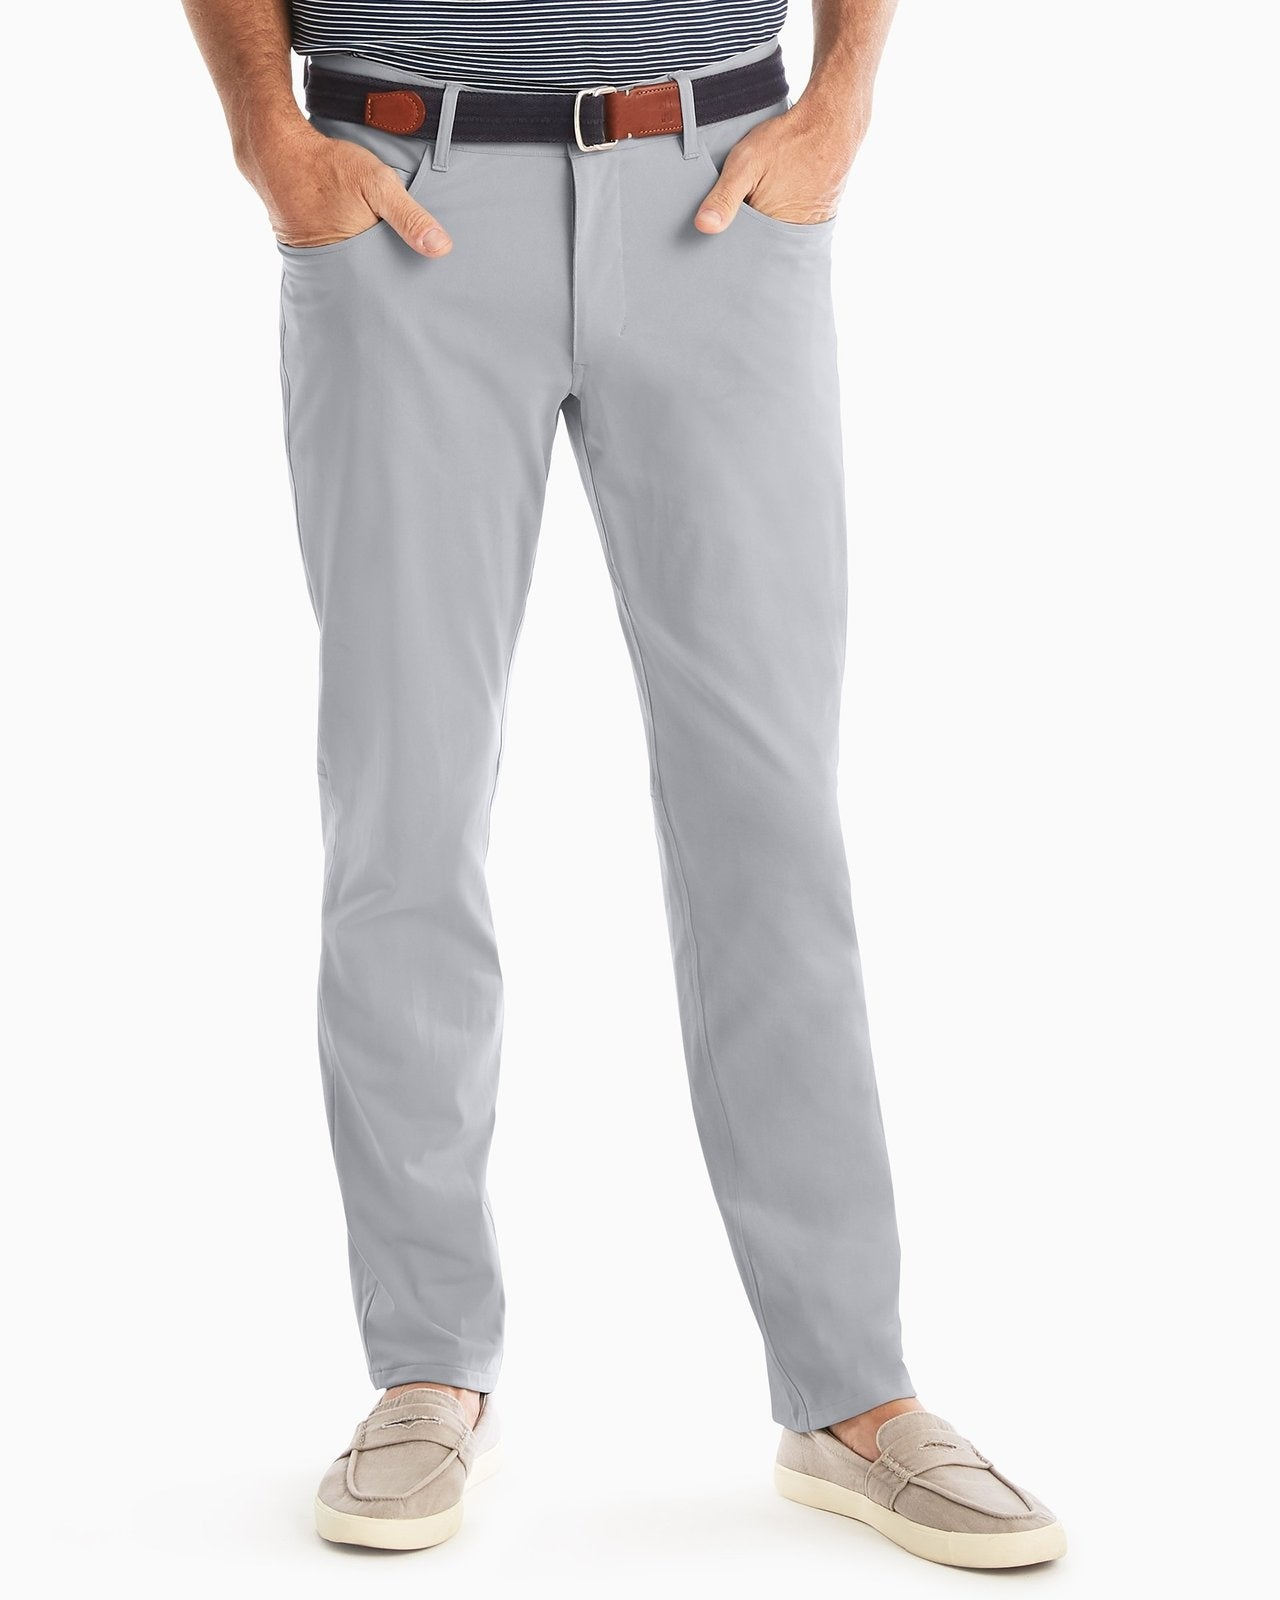 Cross Country 5 Pocket Pant